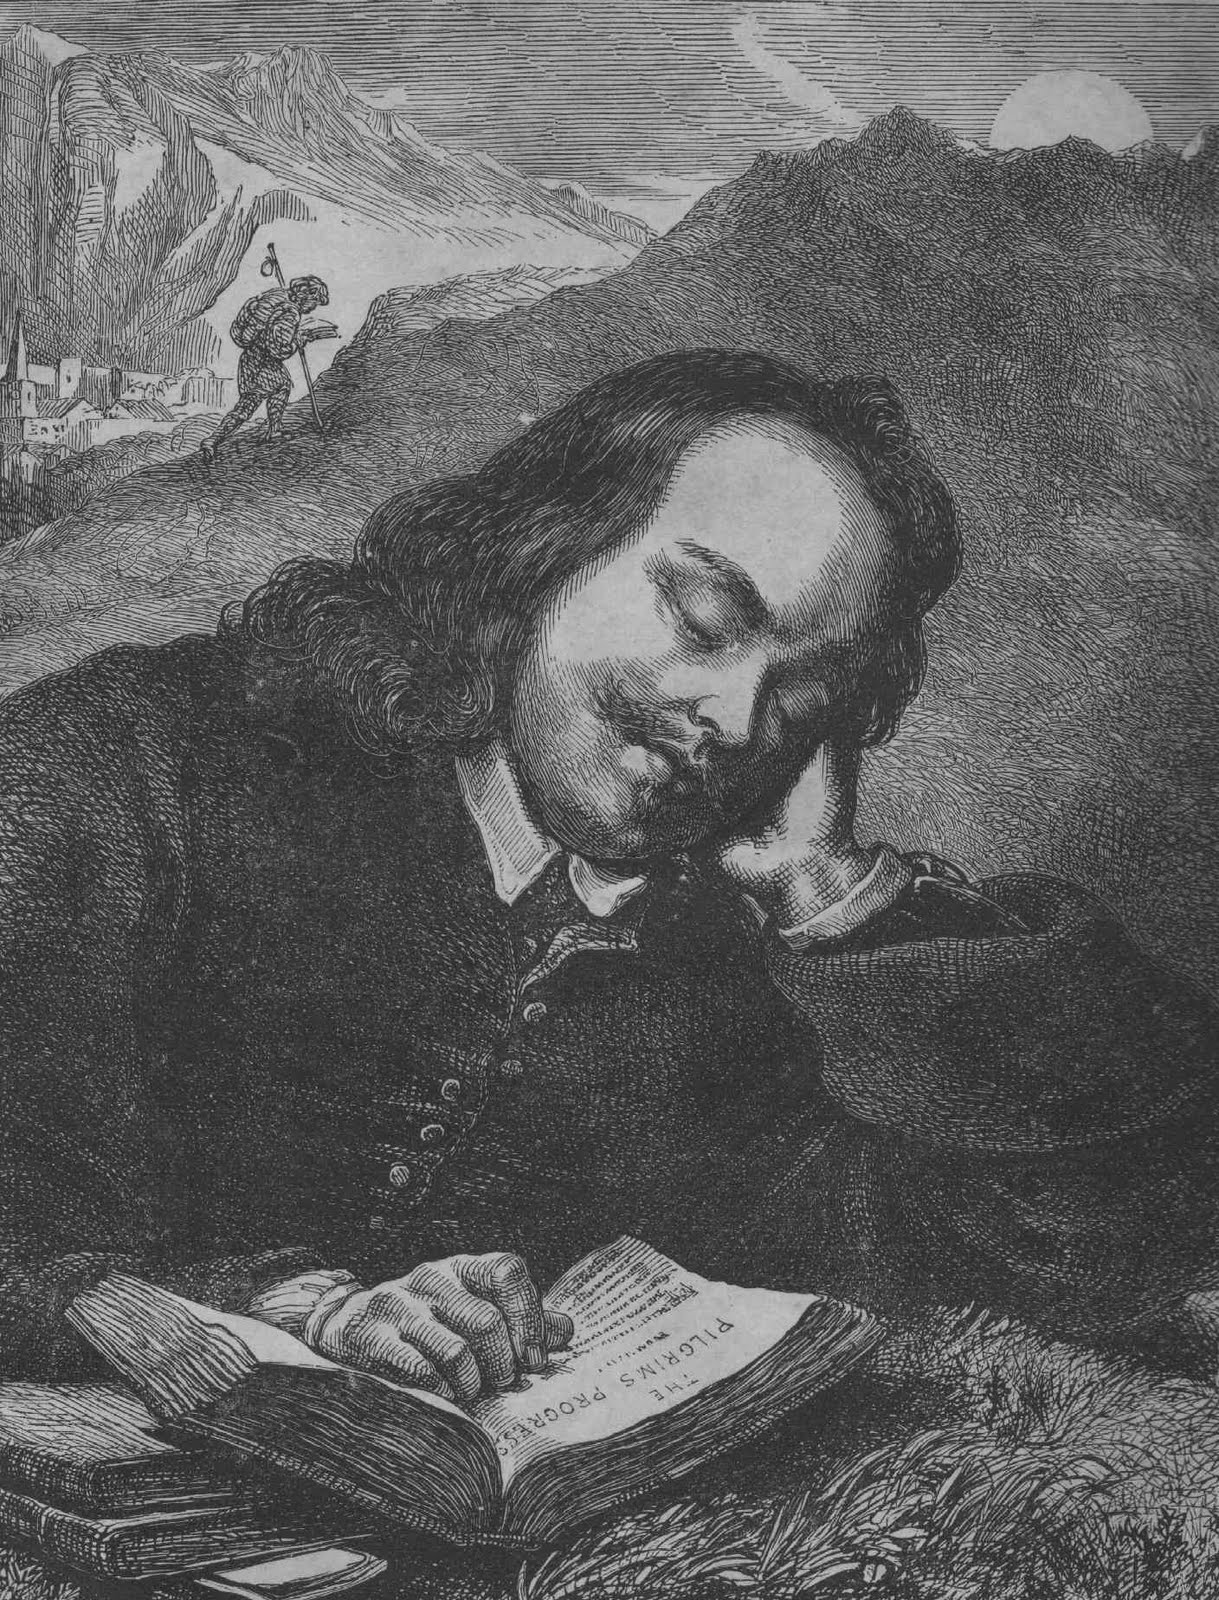 John Bunyan writing Pilgrim's Progress